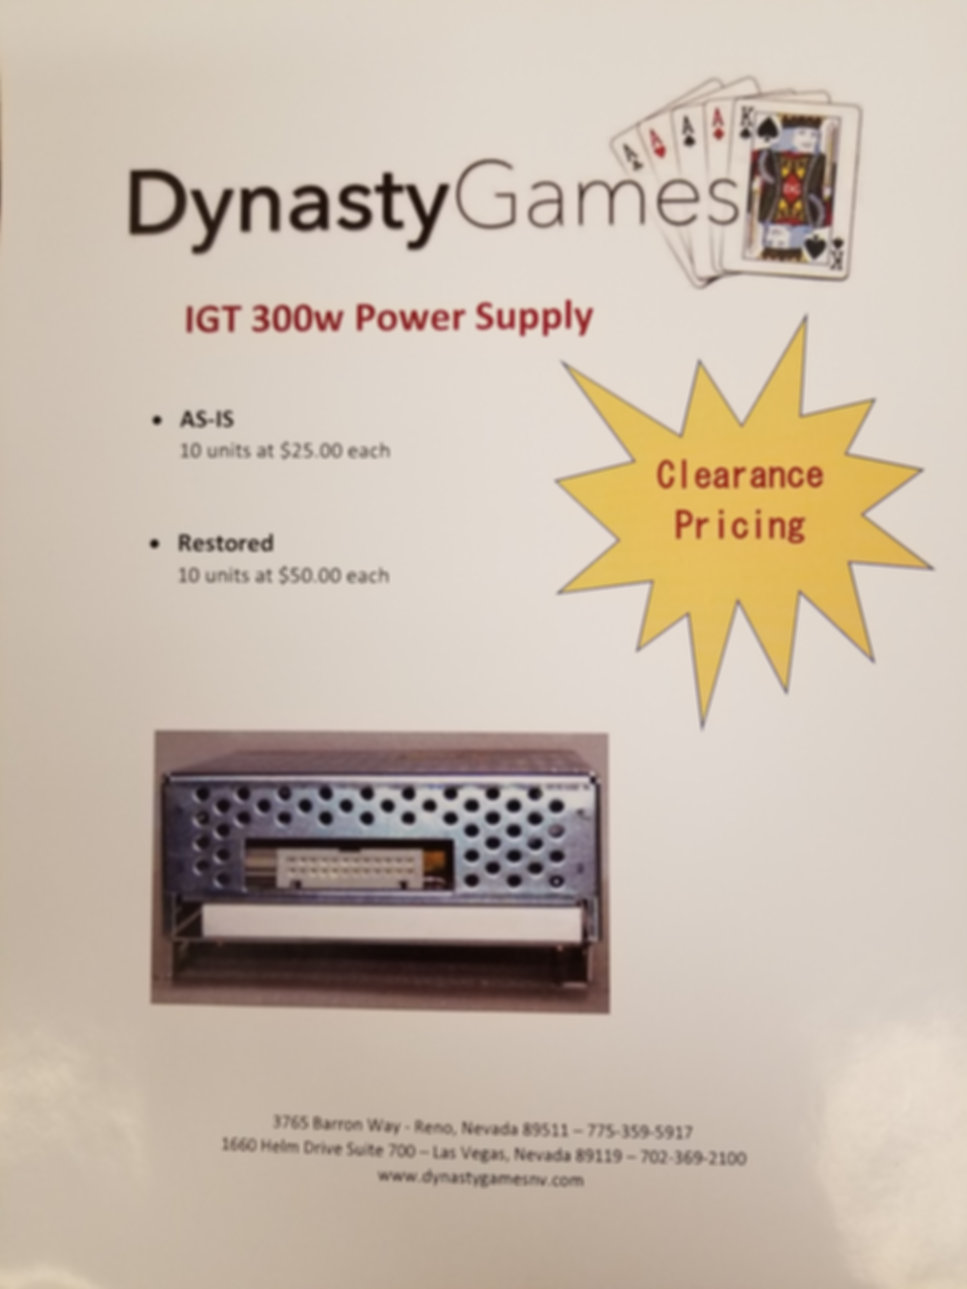 IGT 300W Power Supply Special.jpg